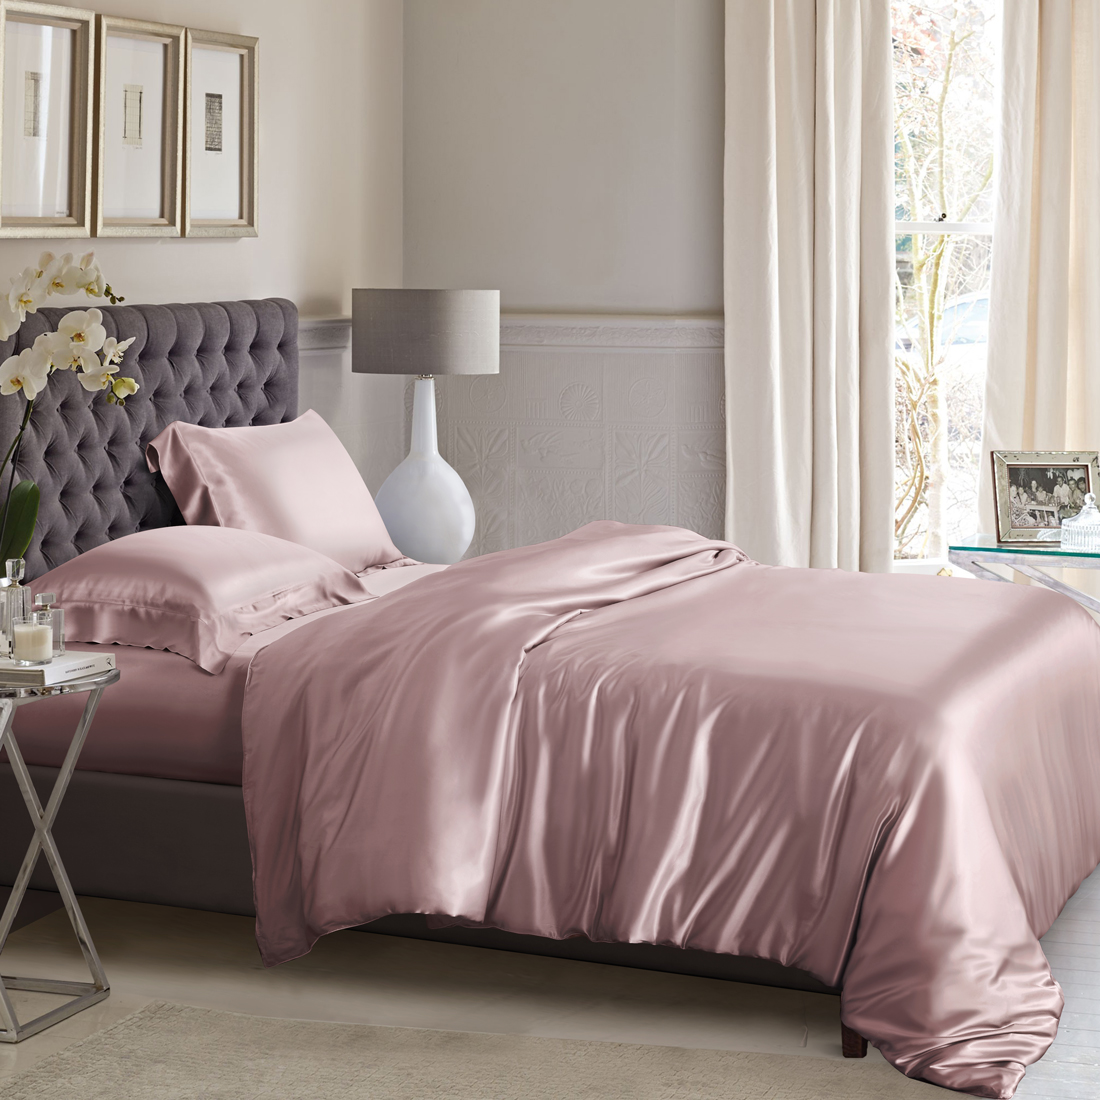 Dusty Rose Silk Bed Linen High Quality Mulberry Silk